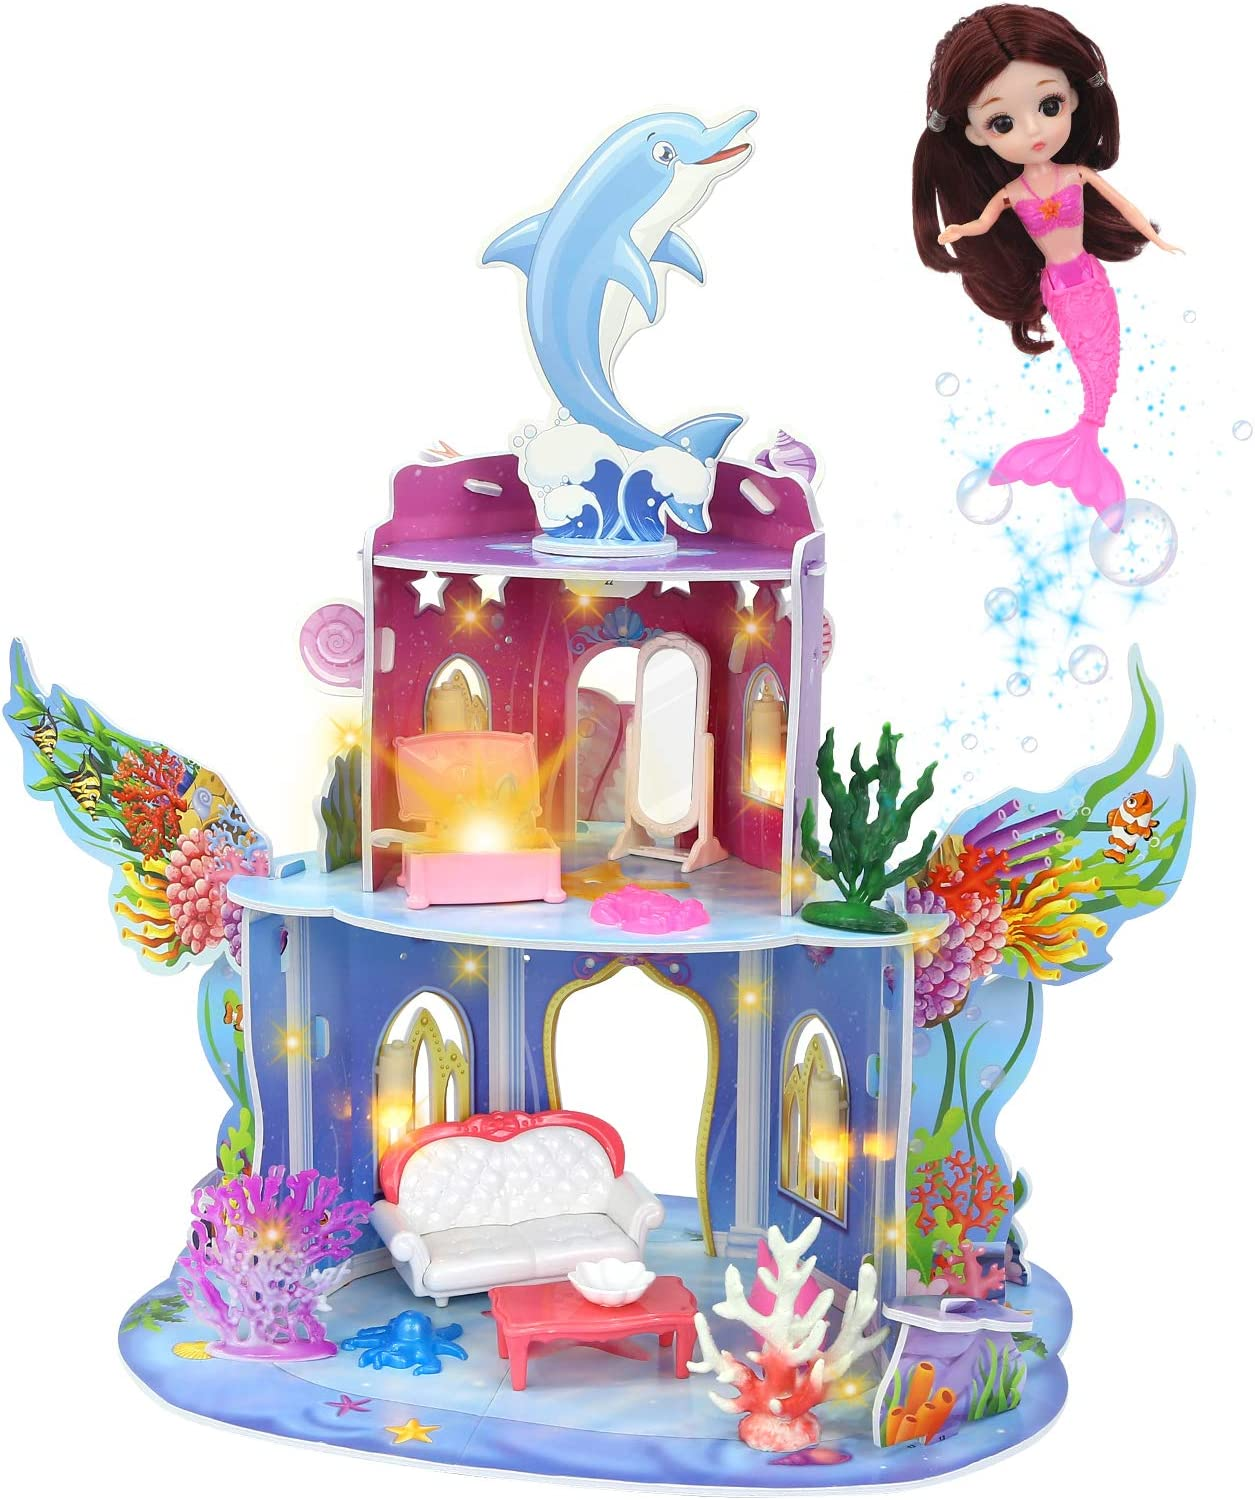 Dollhouse, Playset Two-Story Mermaid Cottage Doll House with Furniture & Accessories Kit for Girls, Indoor DIY Dream Playhouse with Doll for Kids